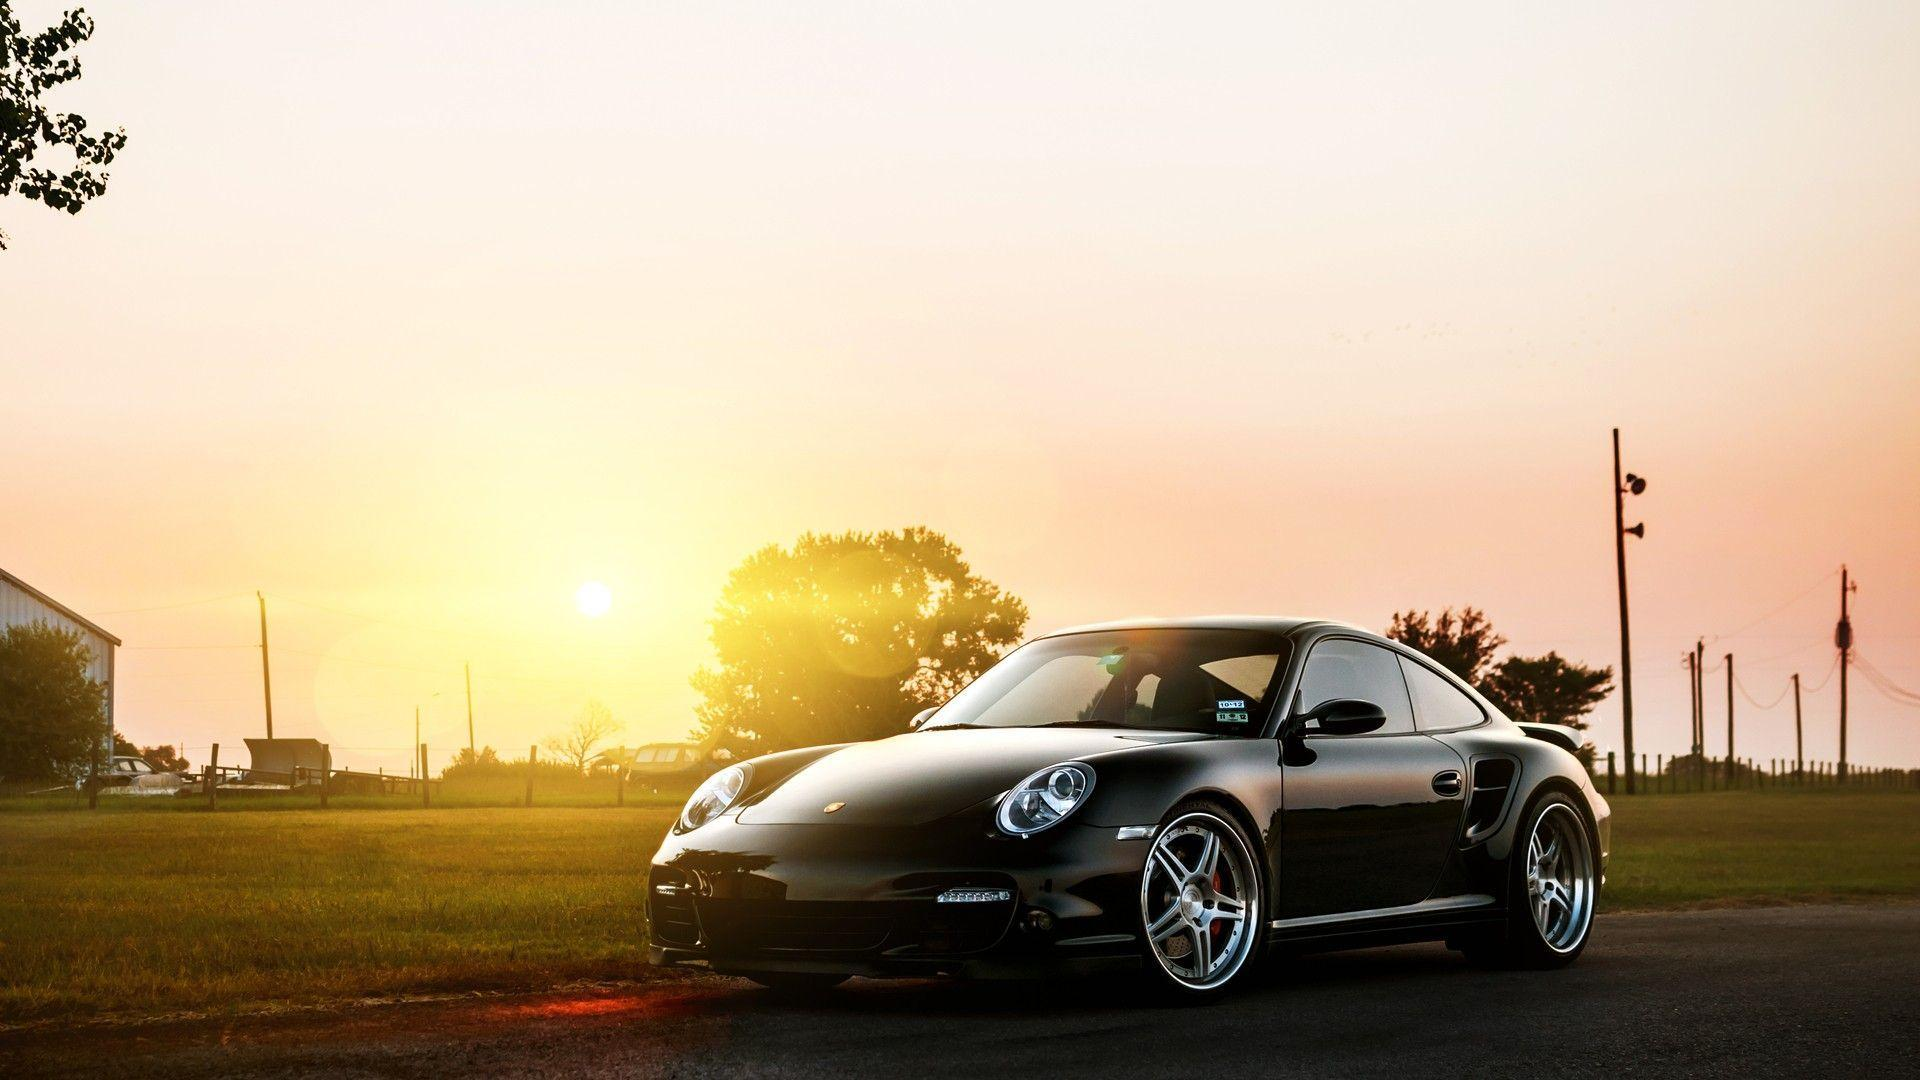 Custom Porsche 911 High Resolution Wallpaper #21779 Porsche Car ...